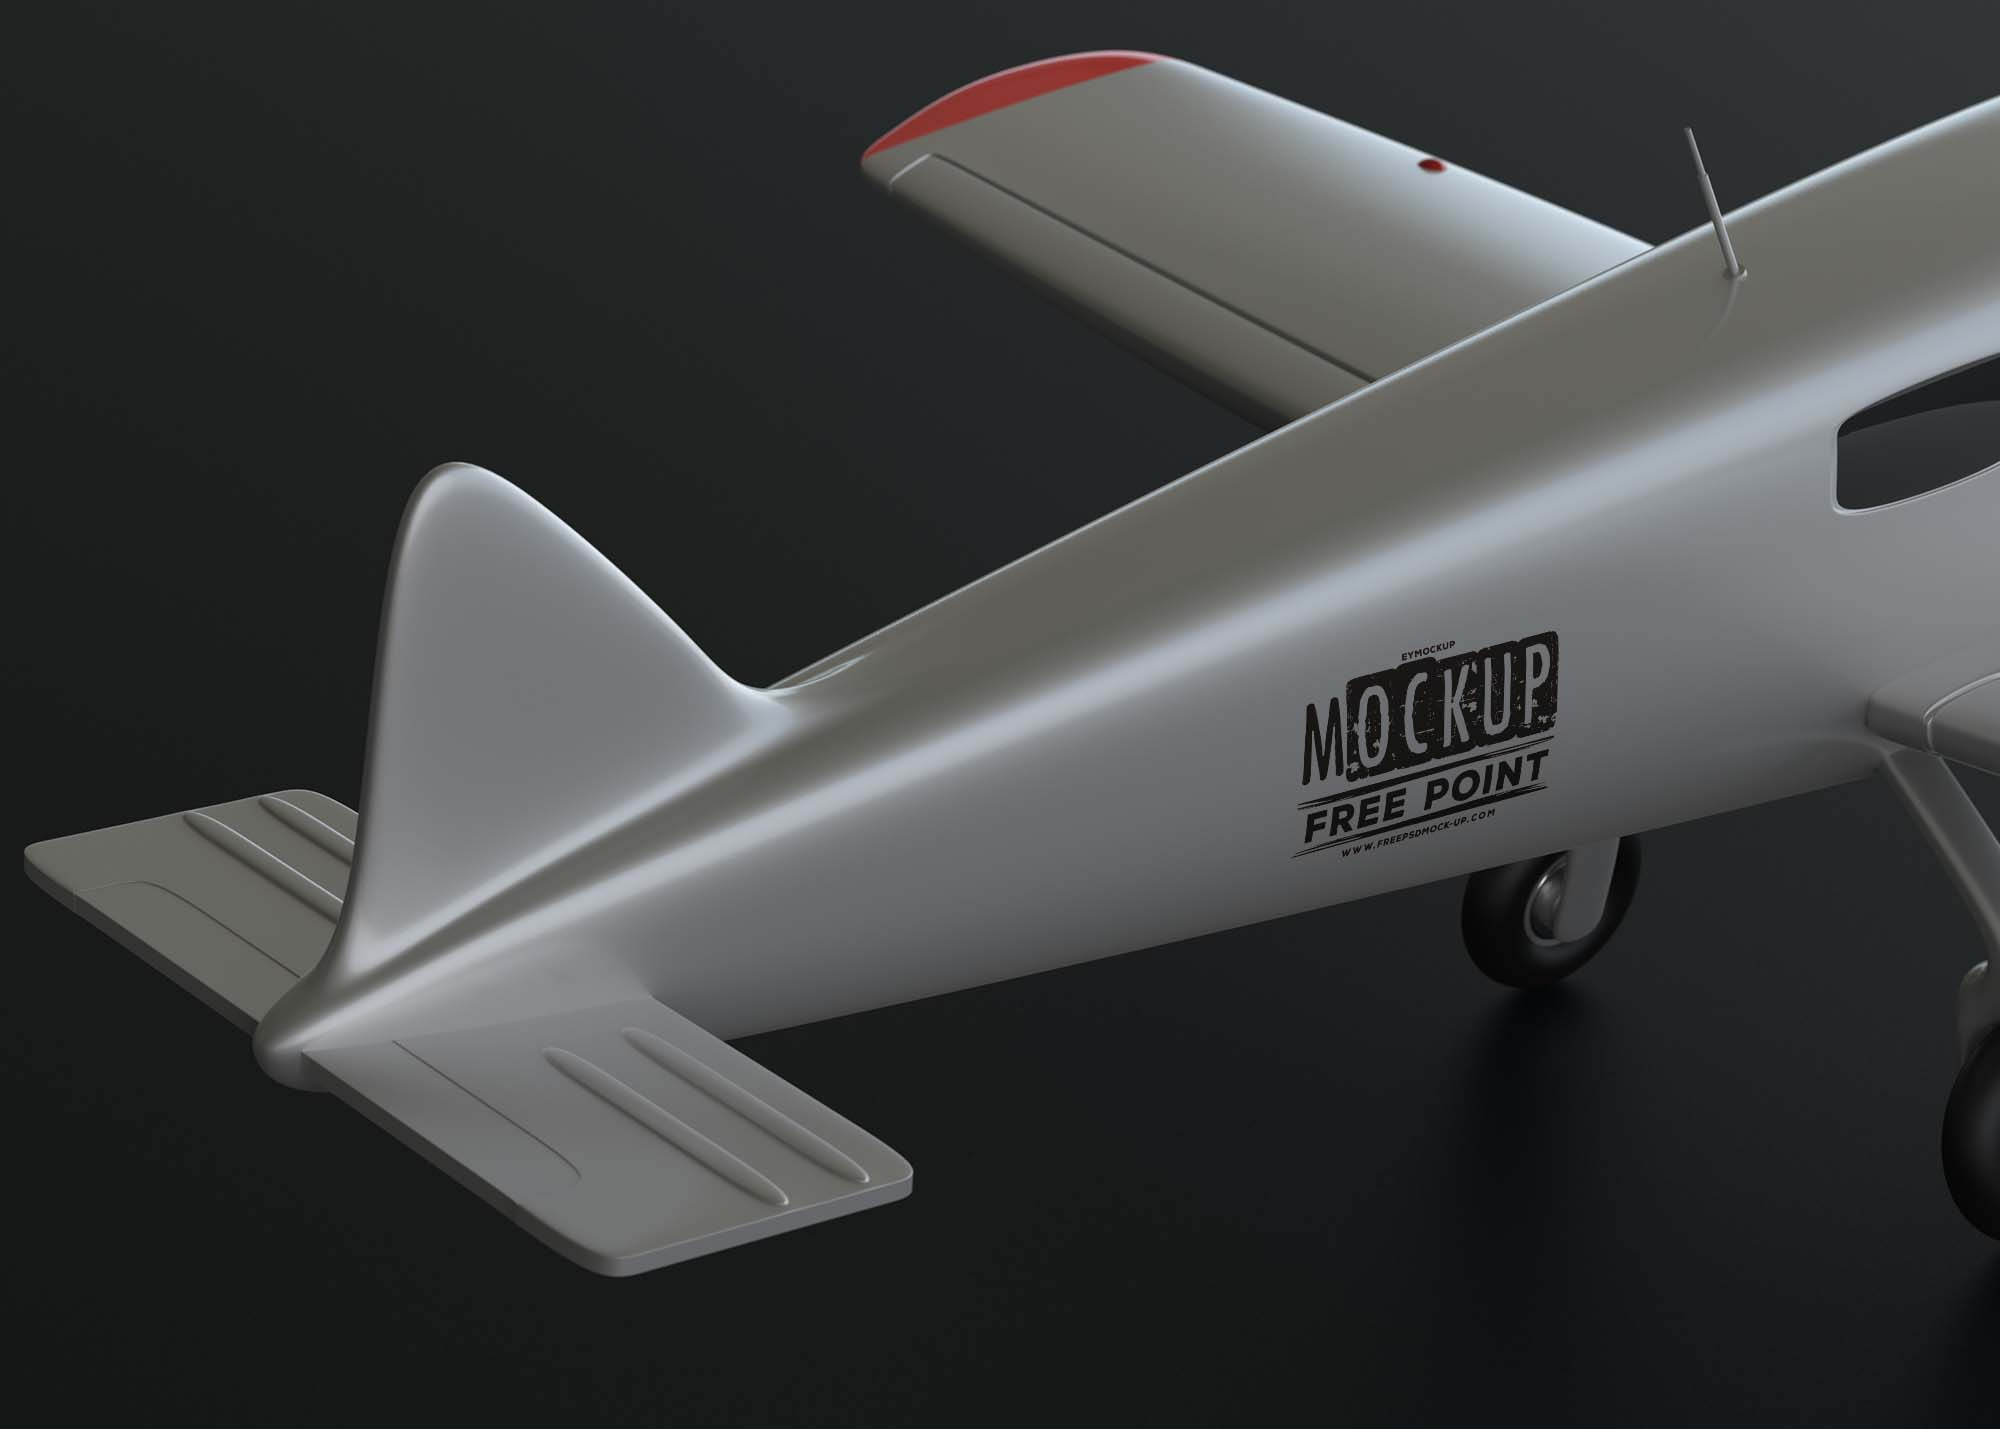 Free Custom Artwork Plane Mockup